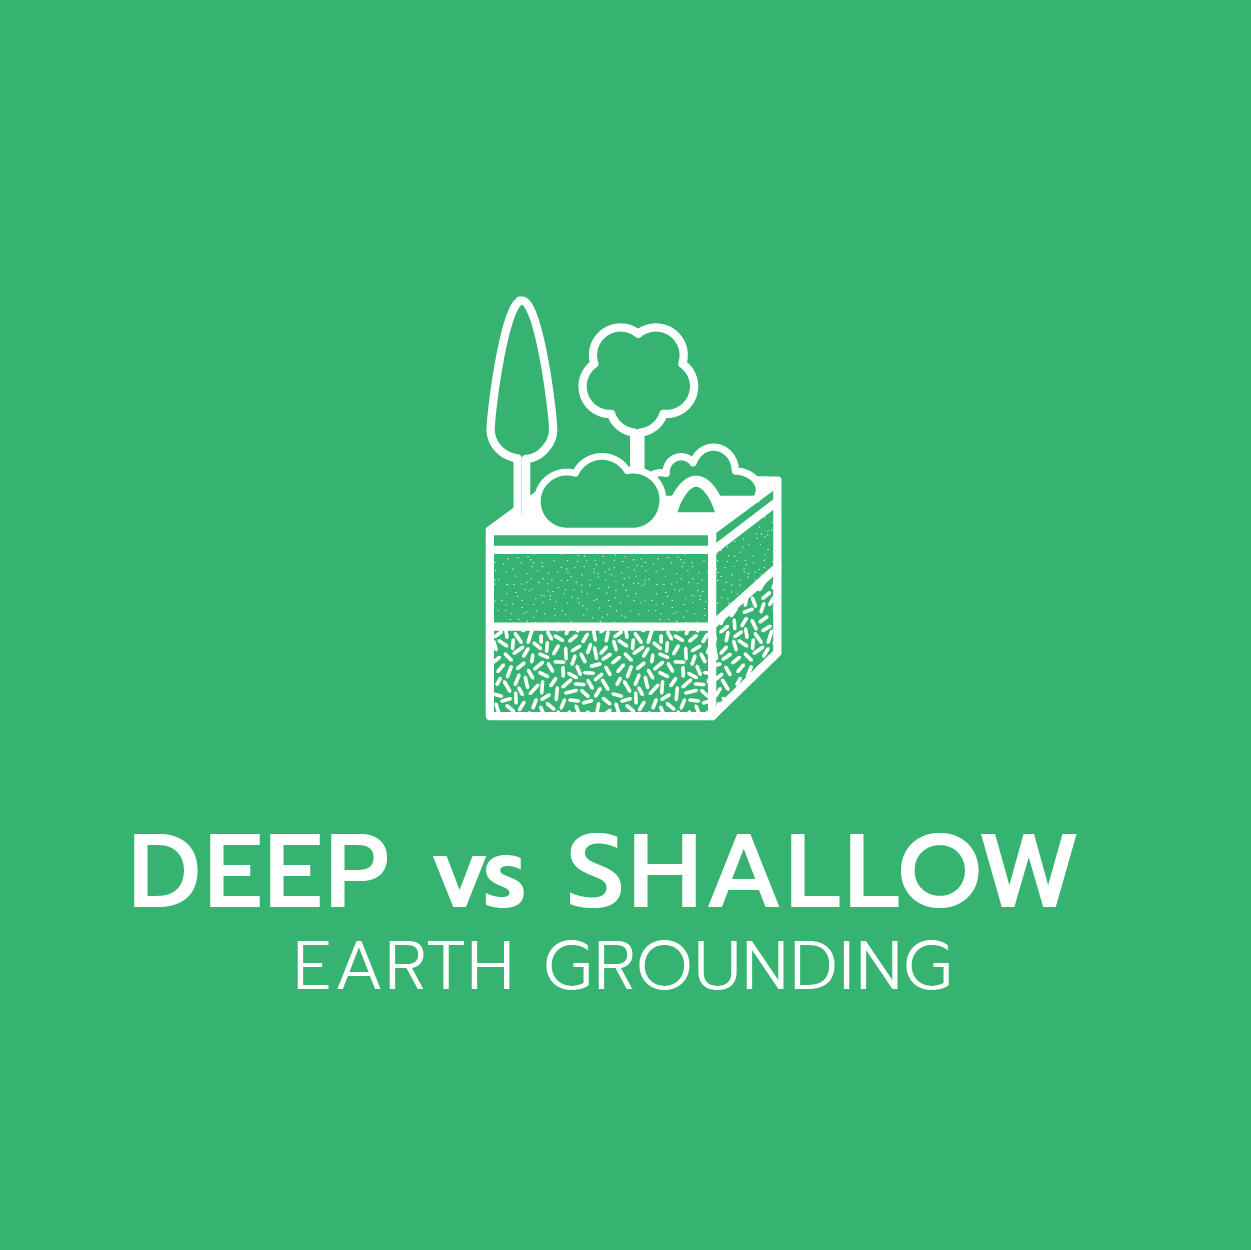 DEEP EARTH GROUNDING vs SHALLOW EARTH GROUNDING